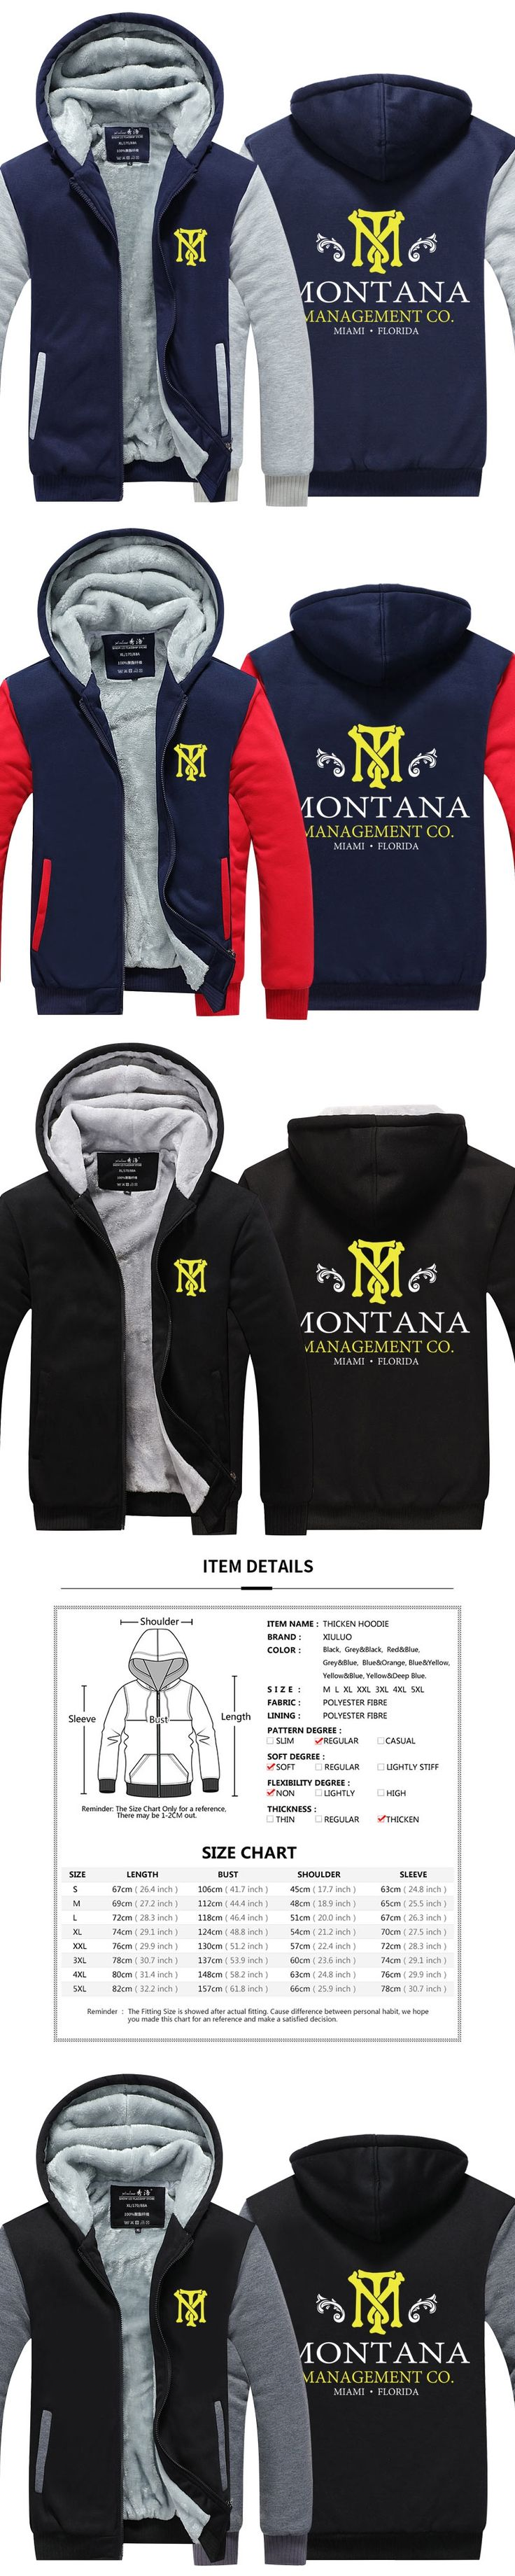 2016 New arrived Mens hoodie Scarface Thicken Fleece Tony Montana Winter Coat US EU Plus Size